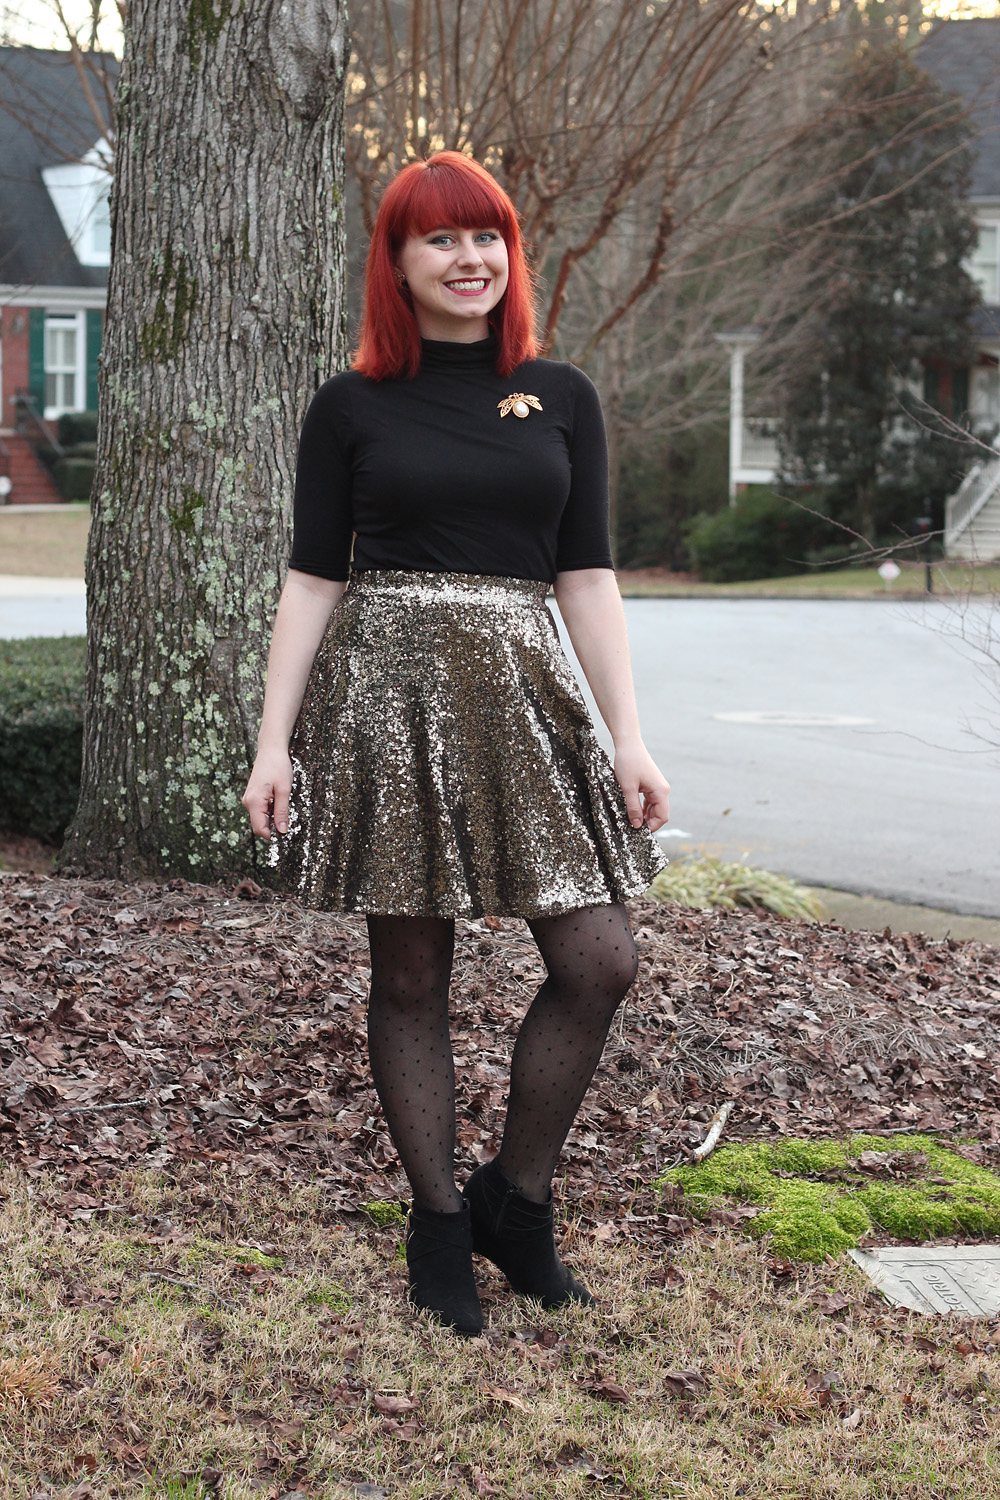 Gold Sequined Skater Skirt, Black Turtleneck T-shirt, Polka Dot Tights, and Black Wedge Boots